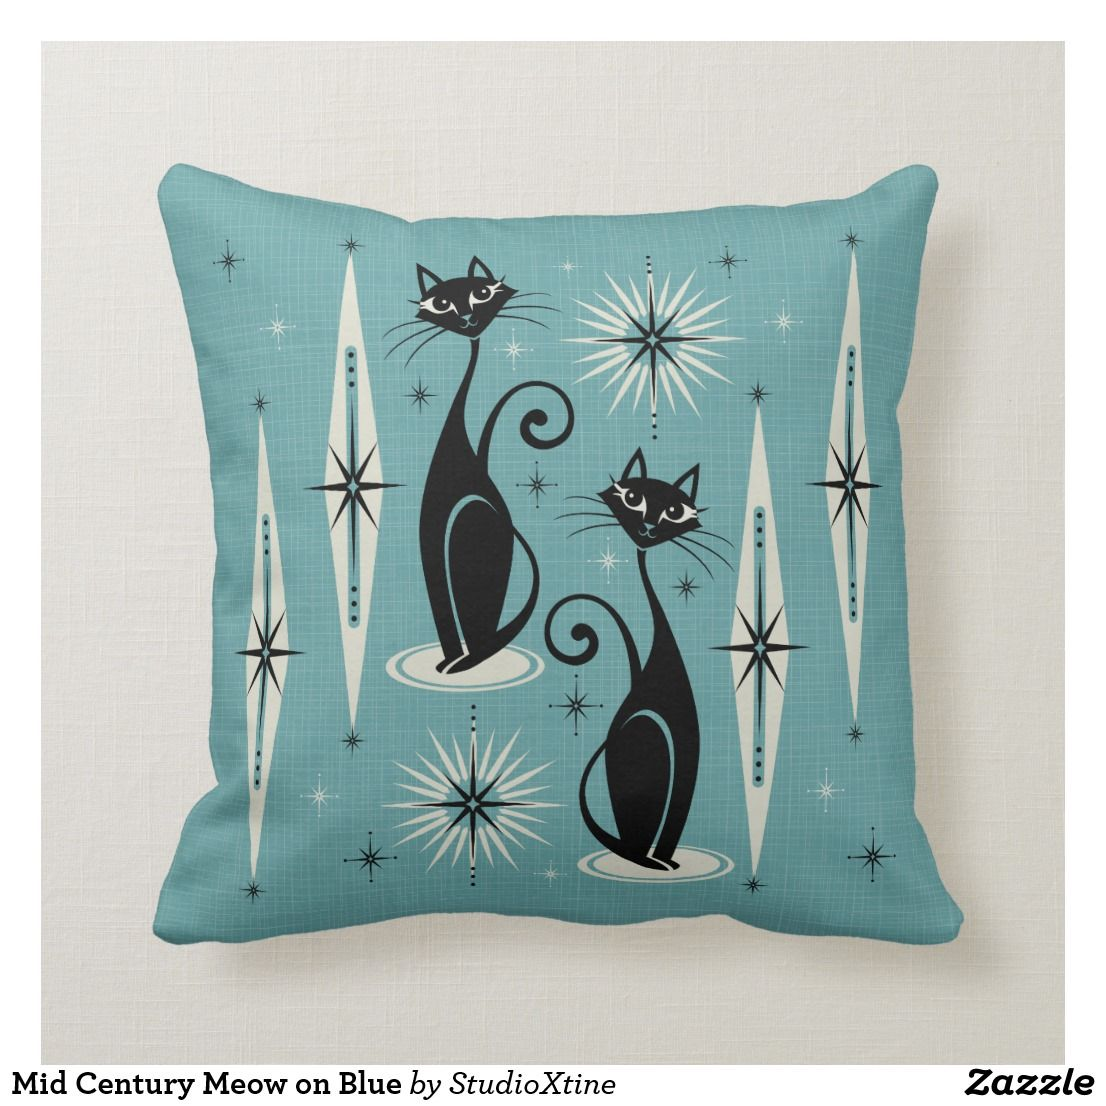 Mid Century Meow on Blue Throw Pillow Blue